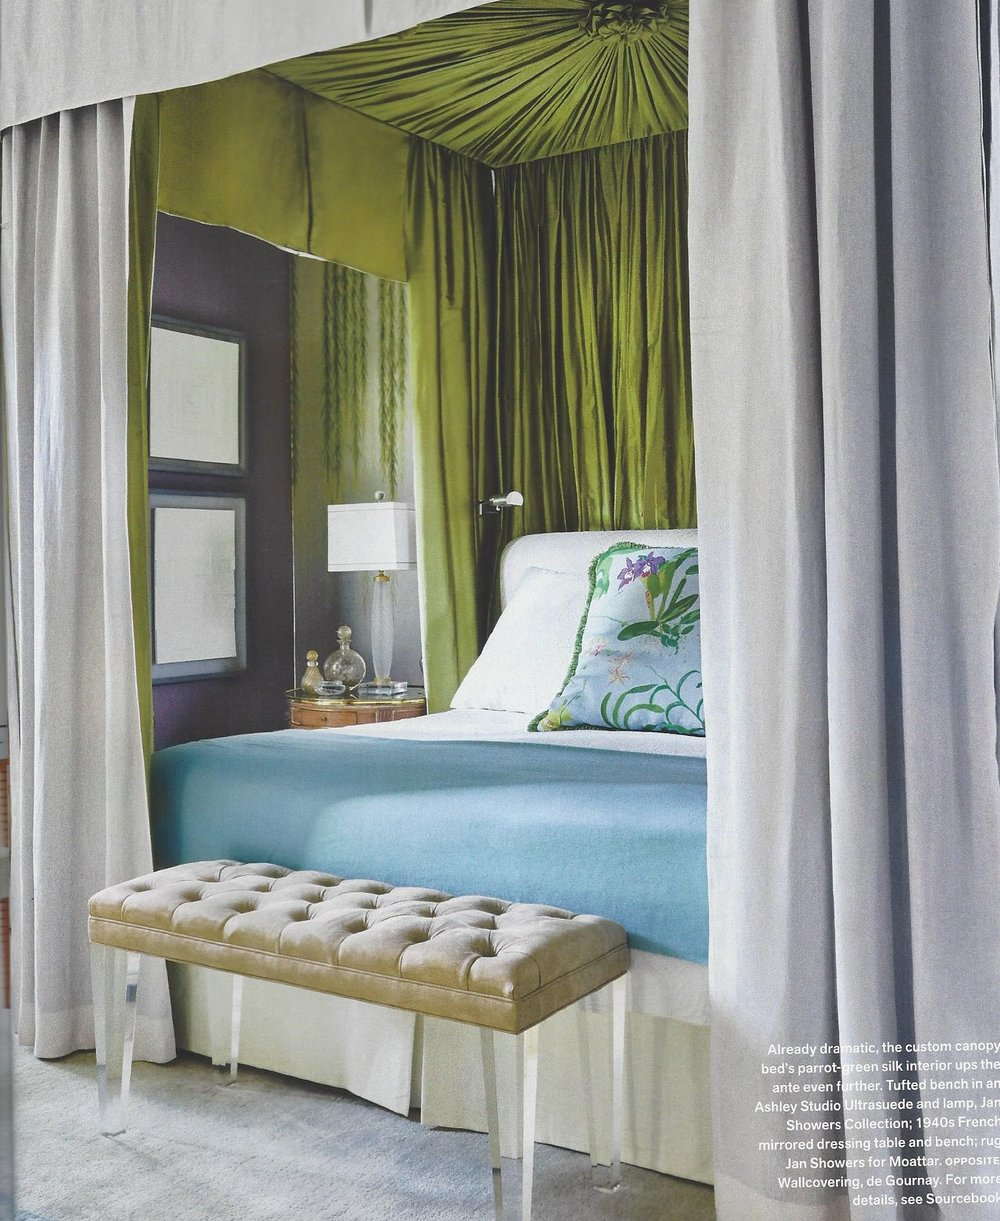 Oh My Goodness! To Get To Go To Sleep At Night And See That Beautiful Green  Silk Above The Bed  Truly Fit For A King Or Queen.